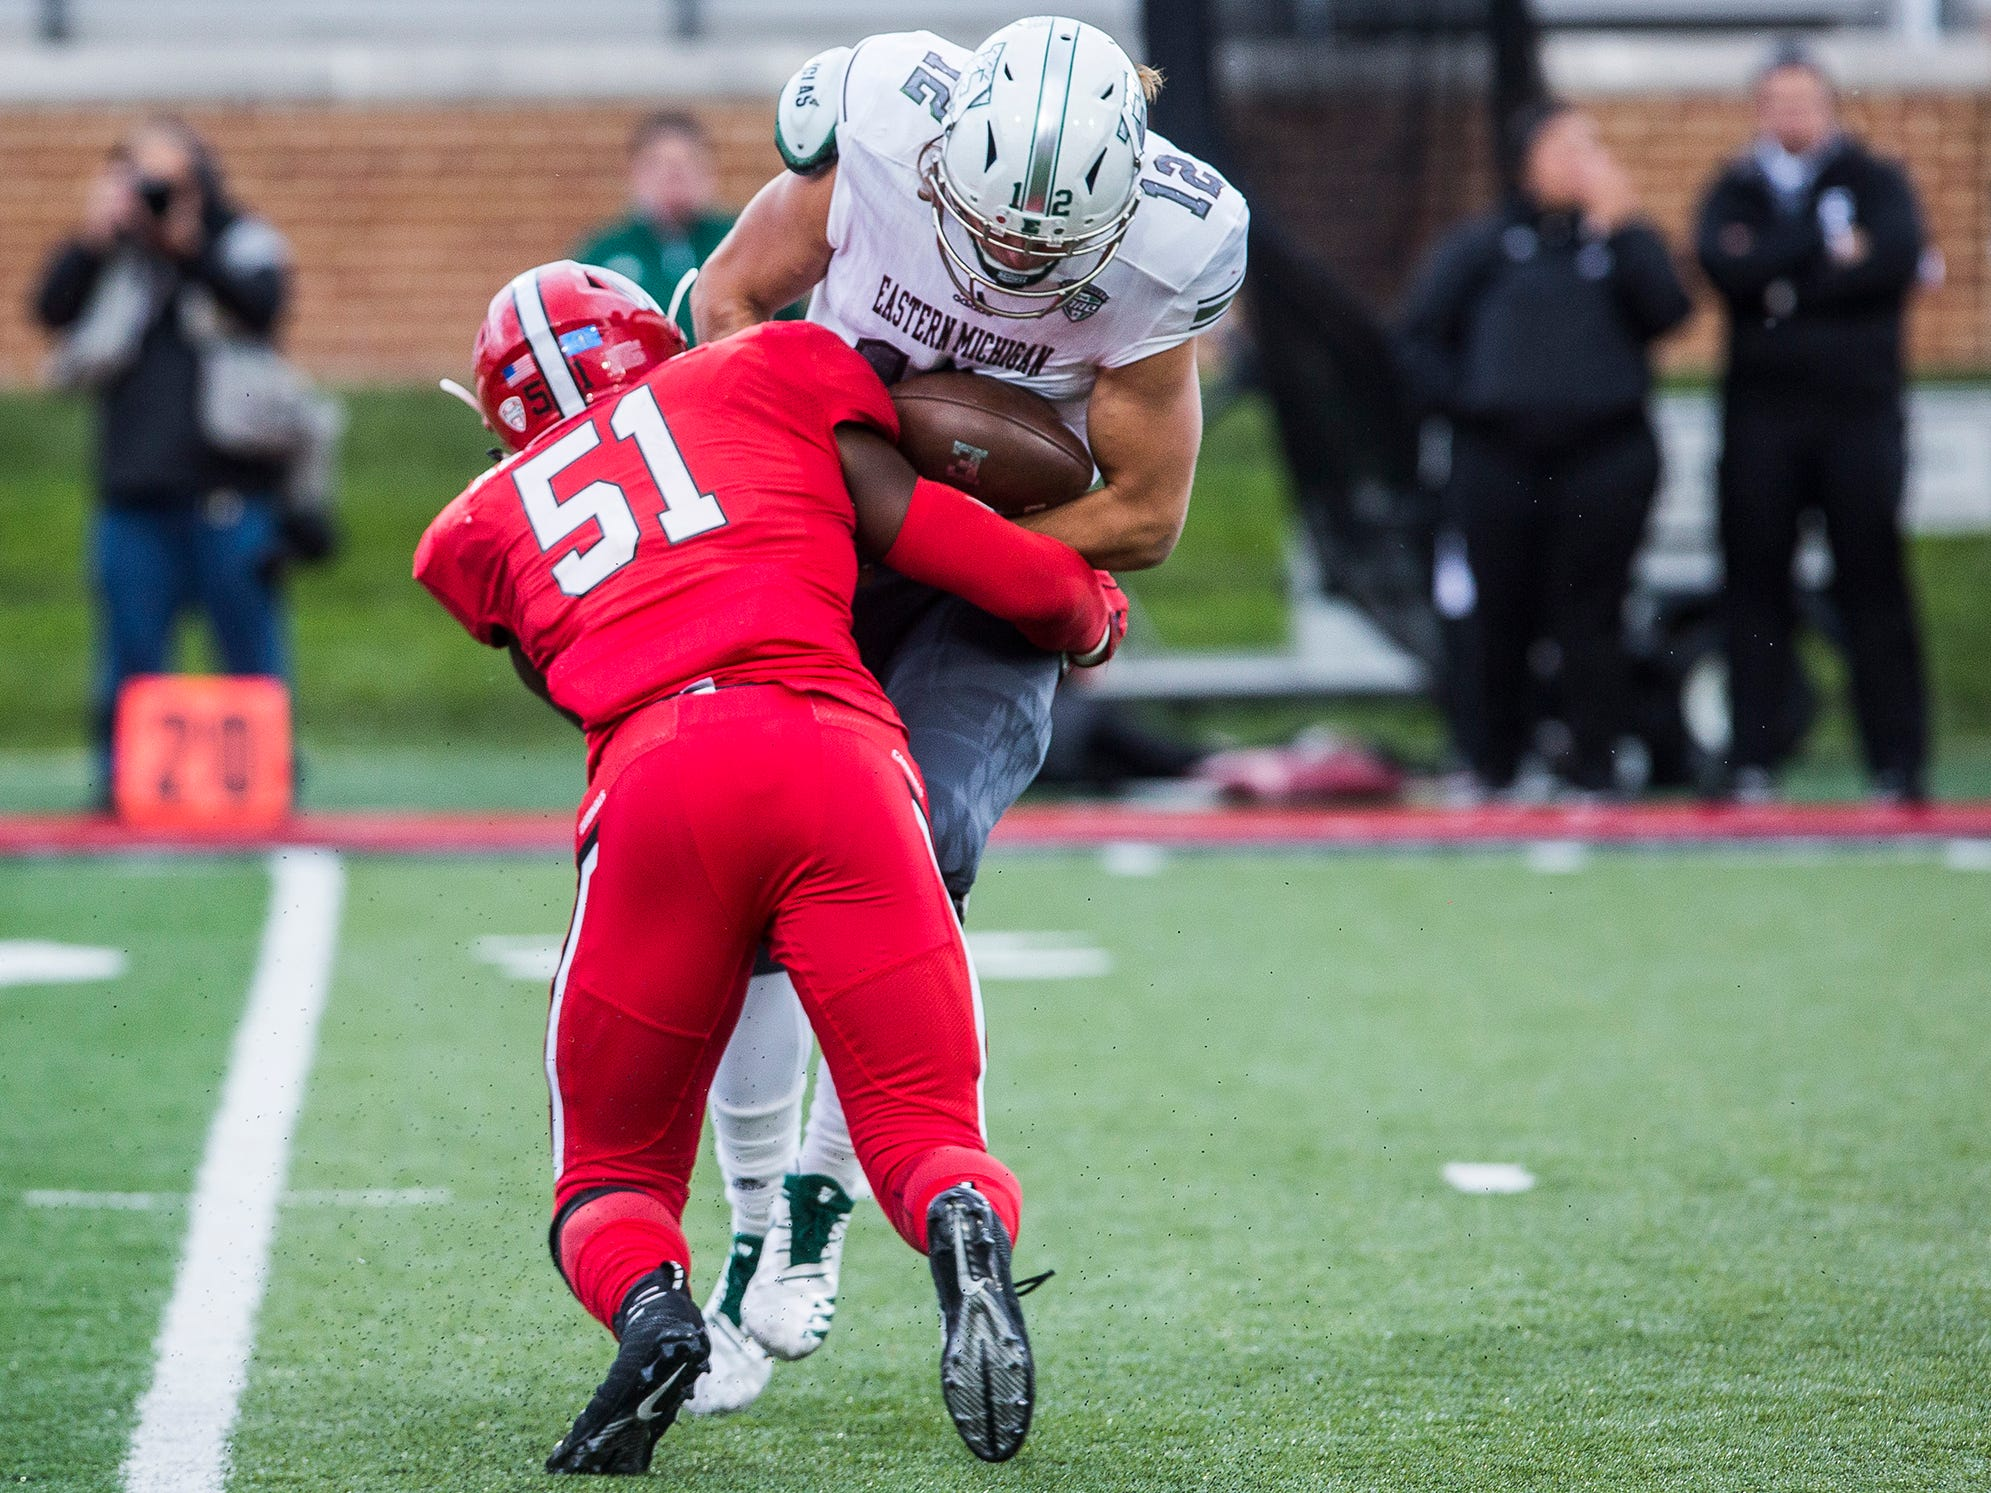 Ball State's Christian Albright sacks Eastern Michigan quarterback Tyler Wiegers during their game at Scheumann Stadium Saturday, Oct. 20, 2018.